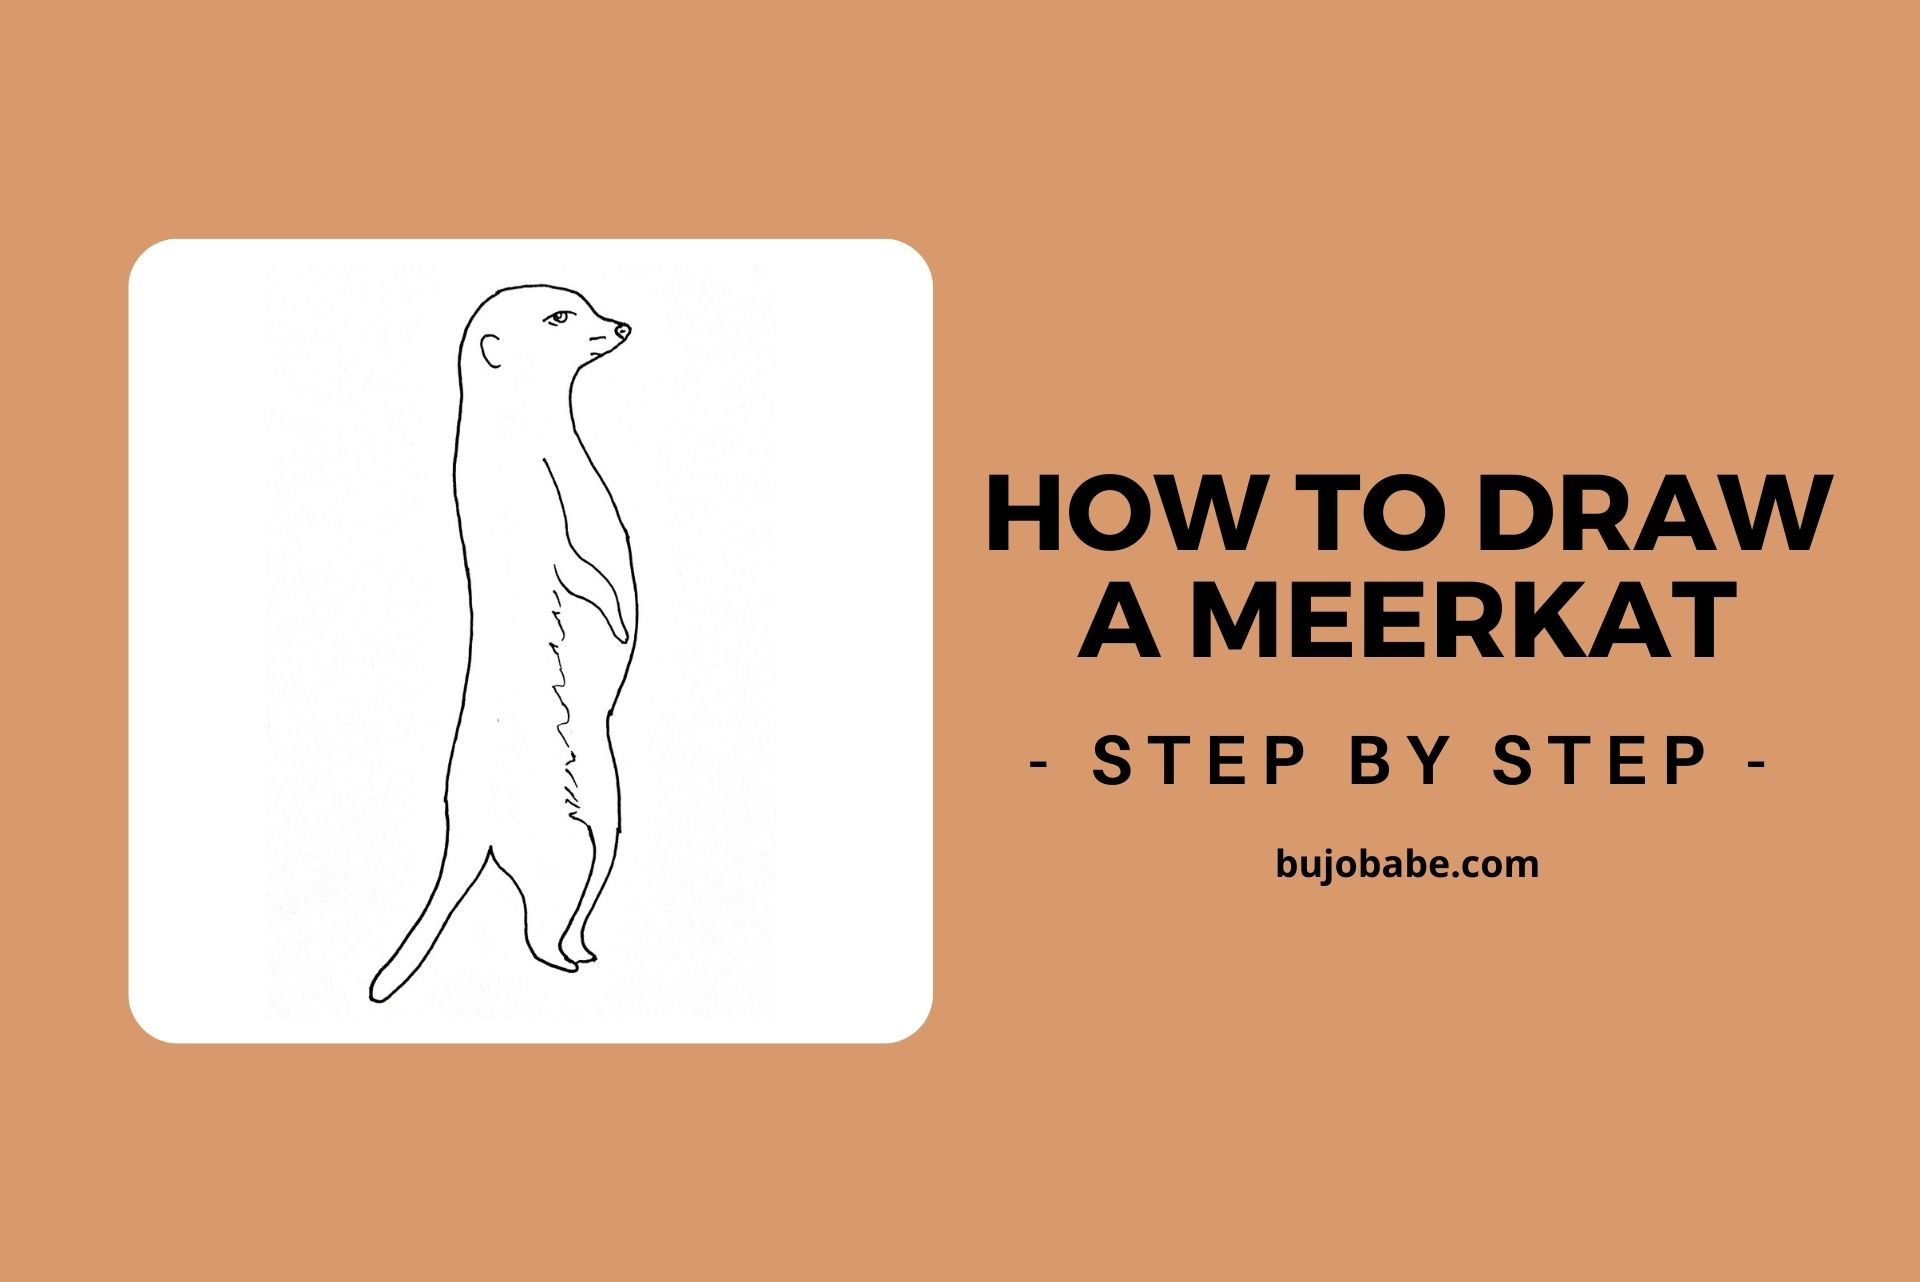 how to draw a meerkat step by step